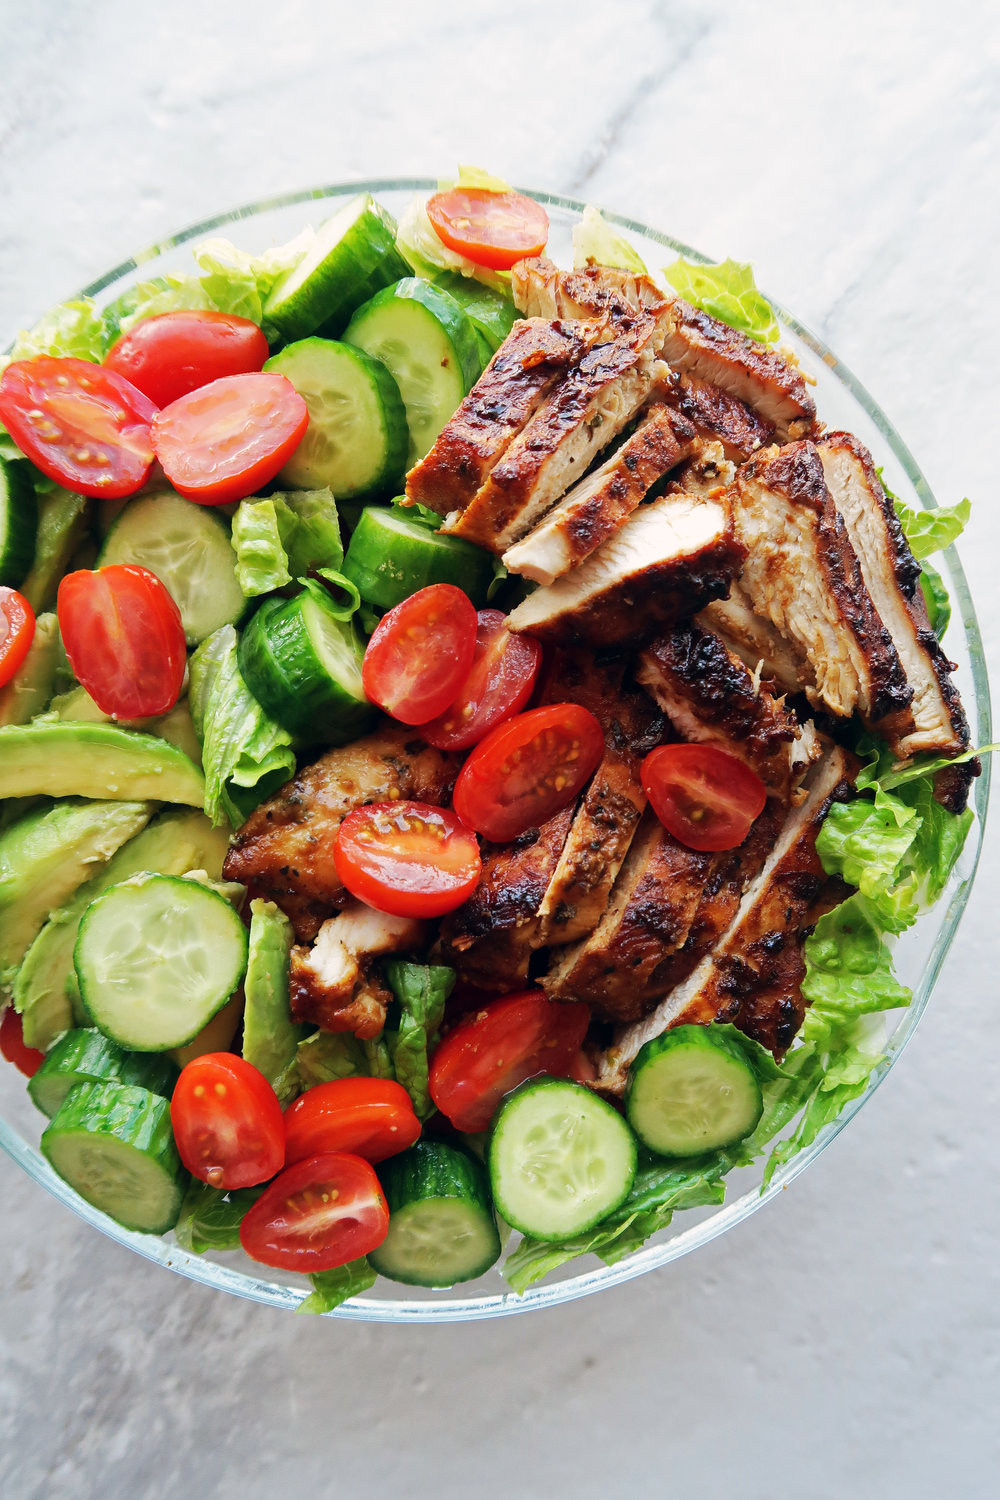 Chopped lettuce, tomatoes, cucumbers, avocado, and sliced honey mustard chicken breasts in a large bowl.